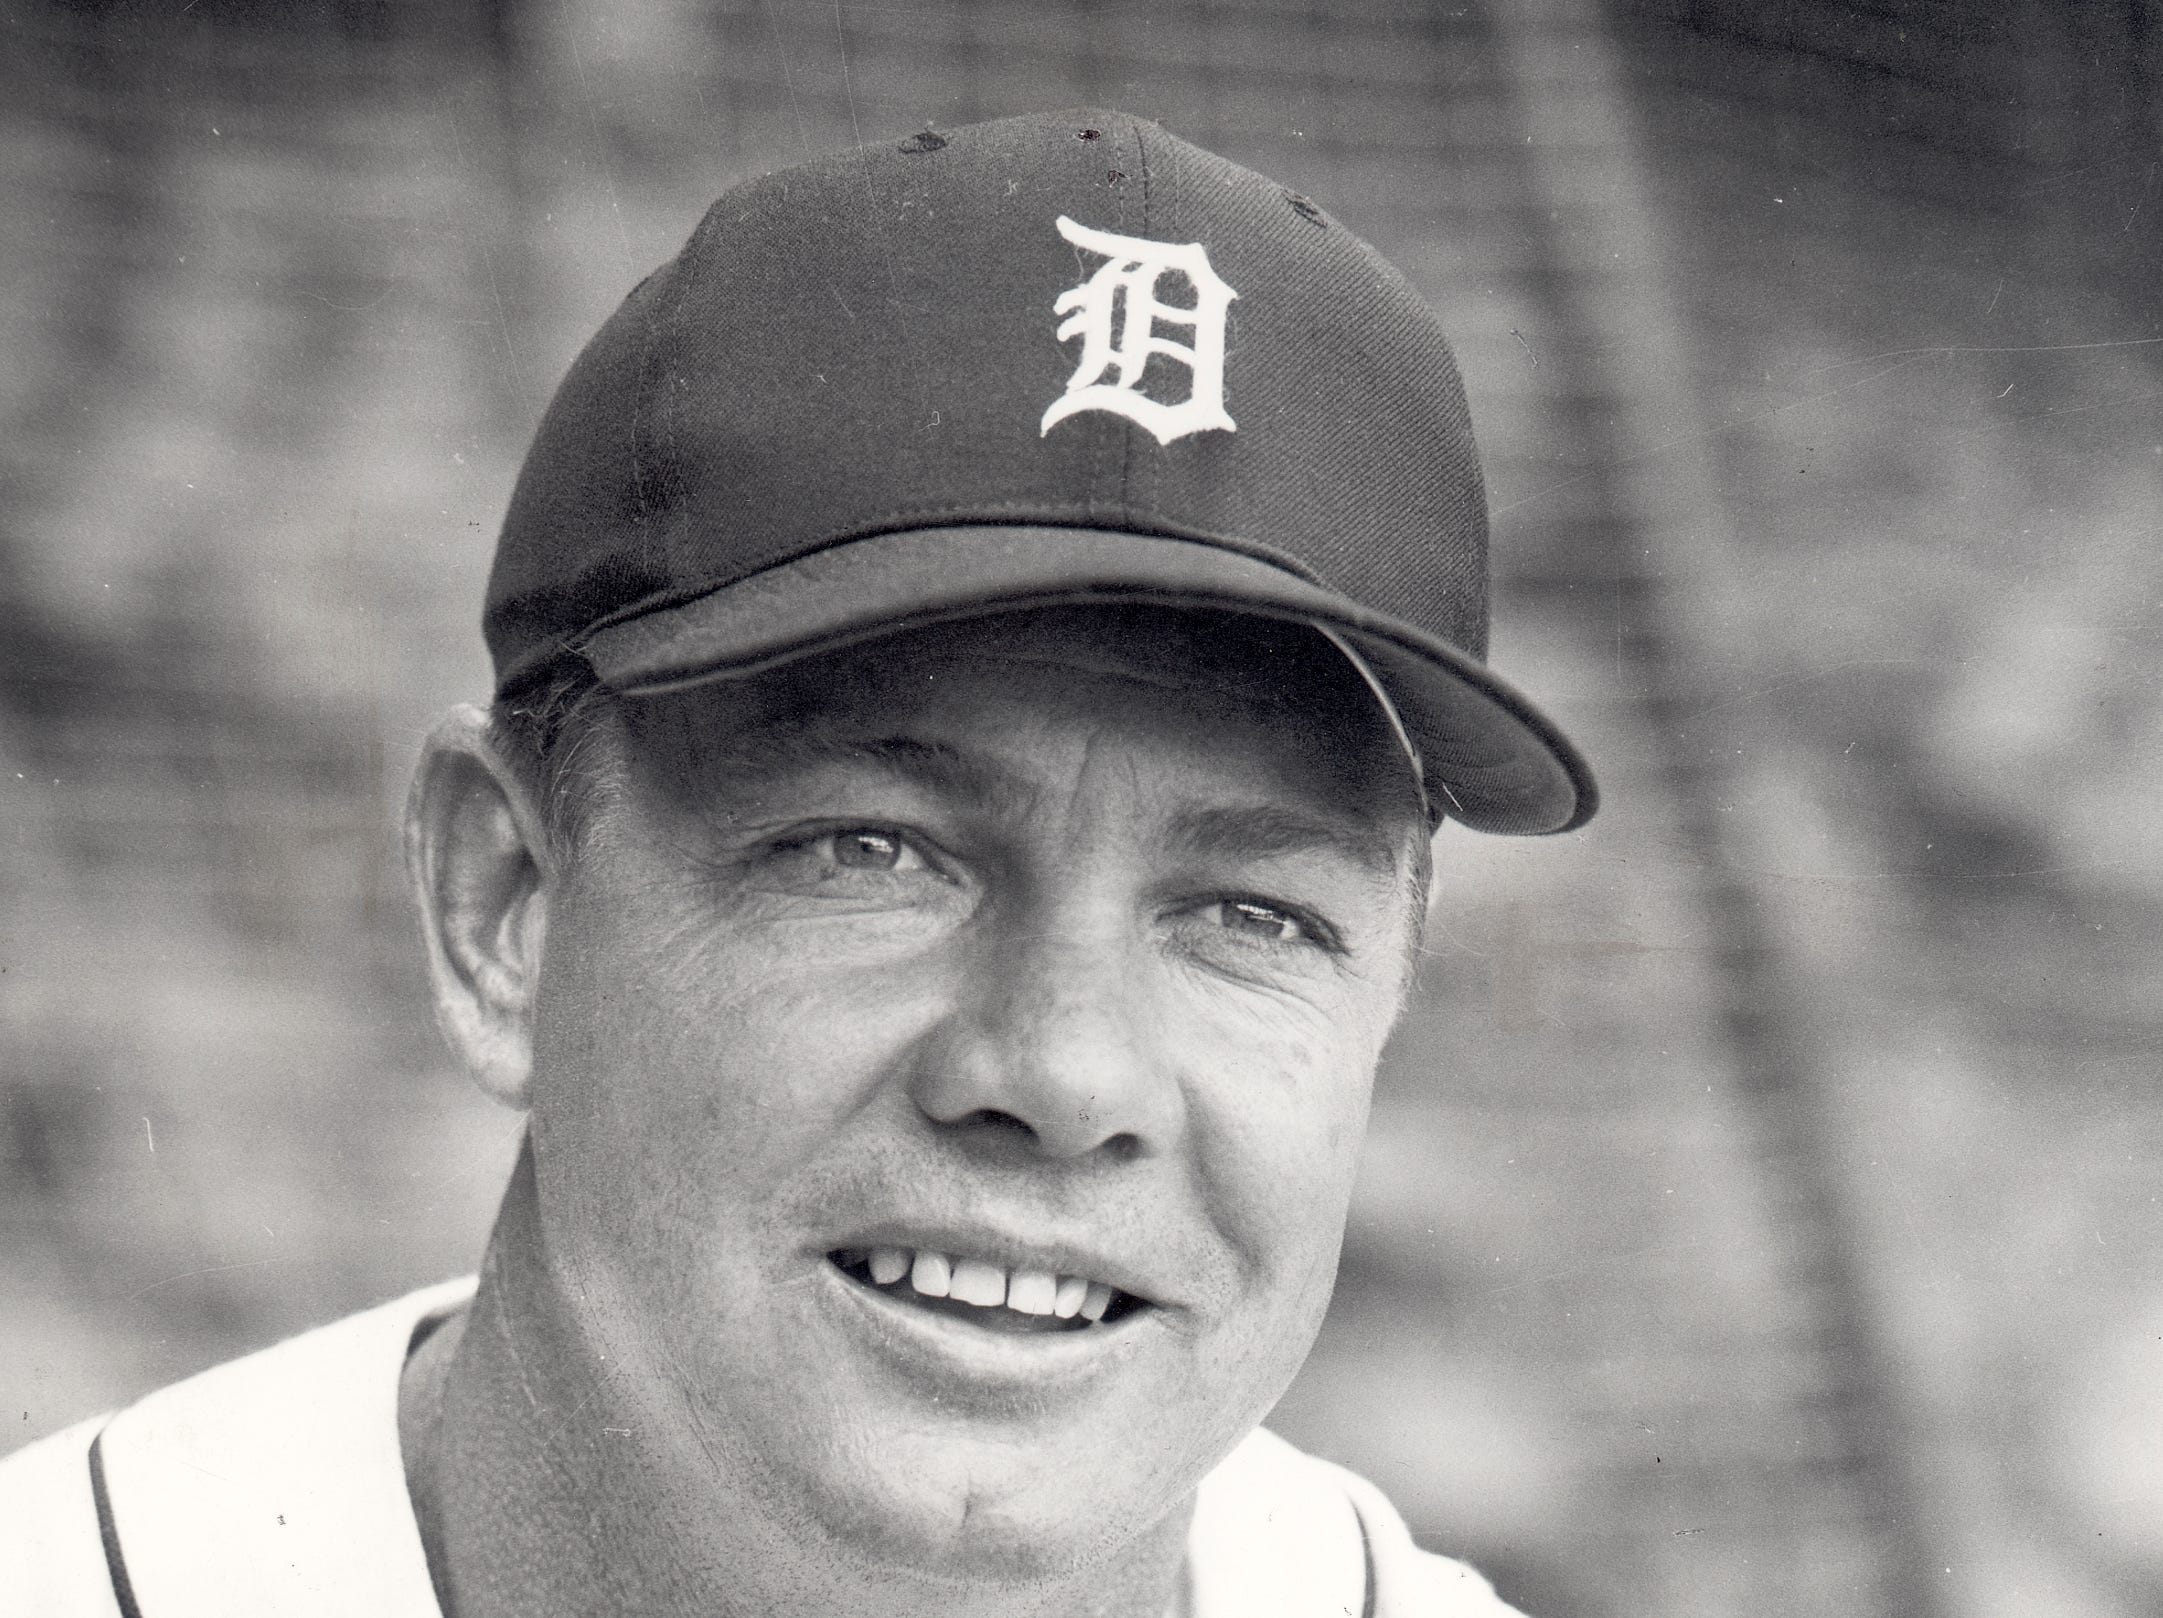 Norm Cash, a fan favorite as a player in the 1960s, joined the Tigers' new TV venture -- ONTV, a subscription service (think cable, before cable). From 1981-83, he worked alongside Larry Adderley and Hank Aguirre.